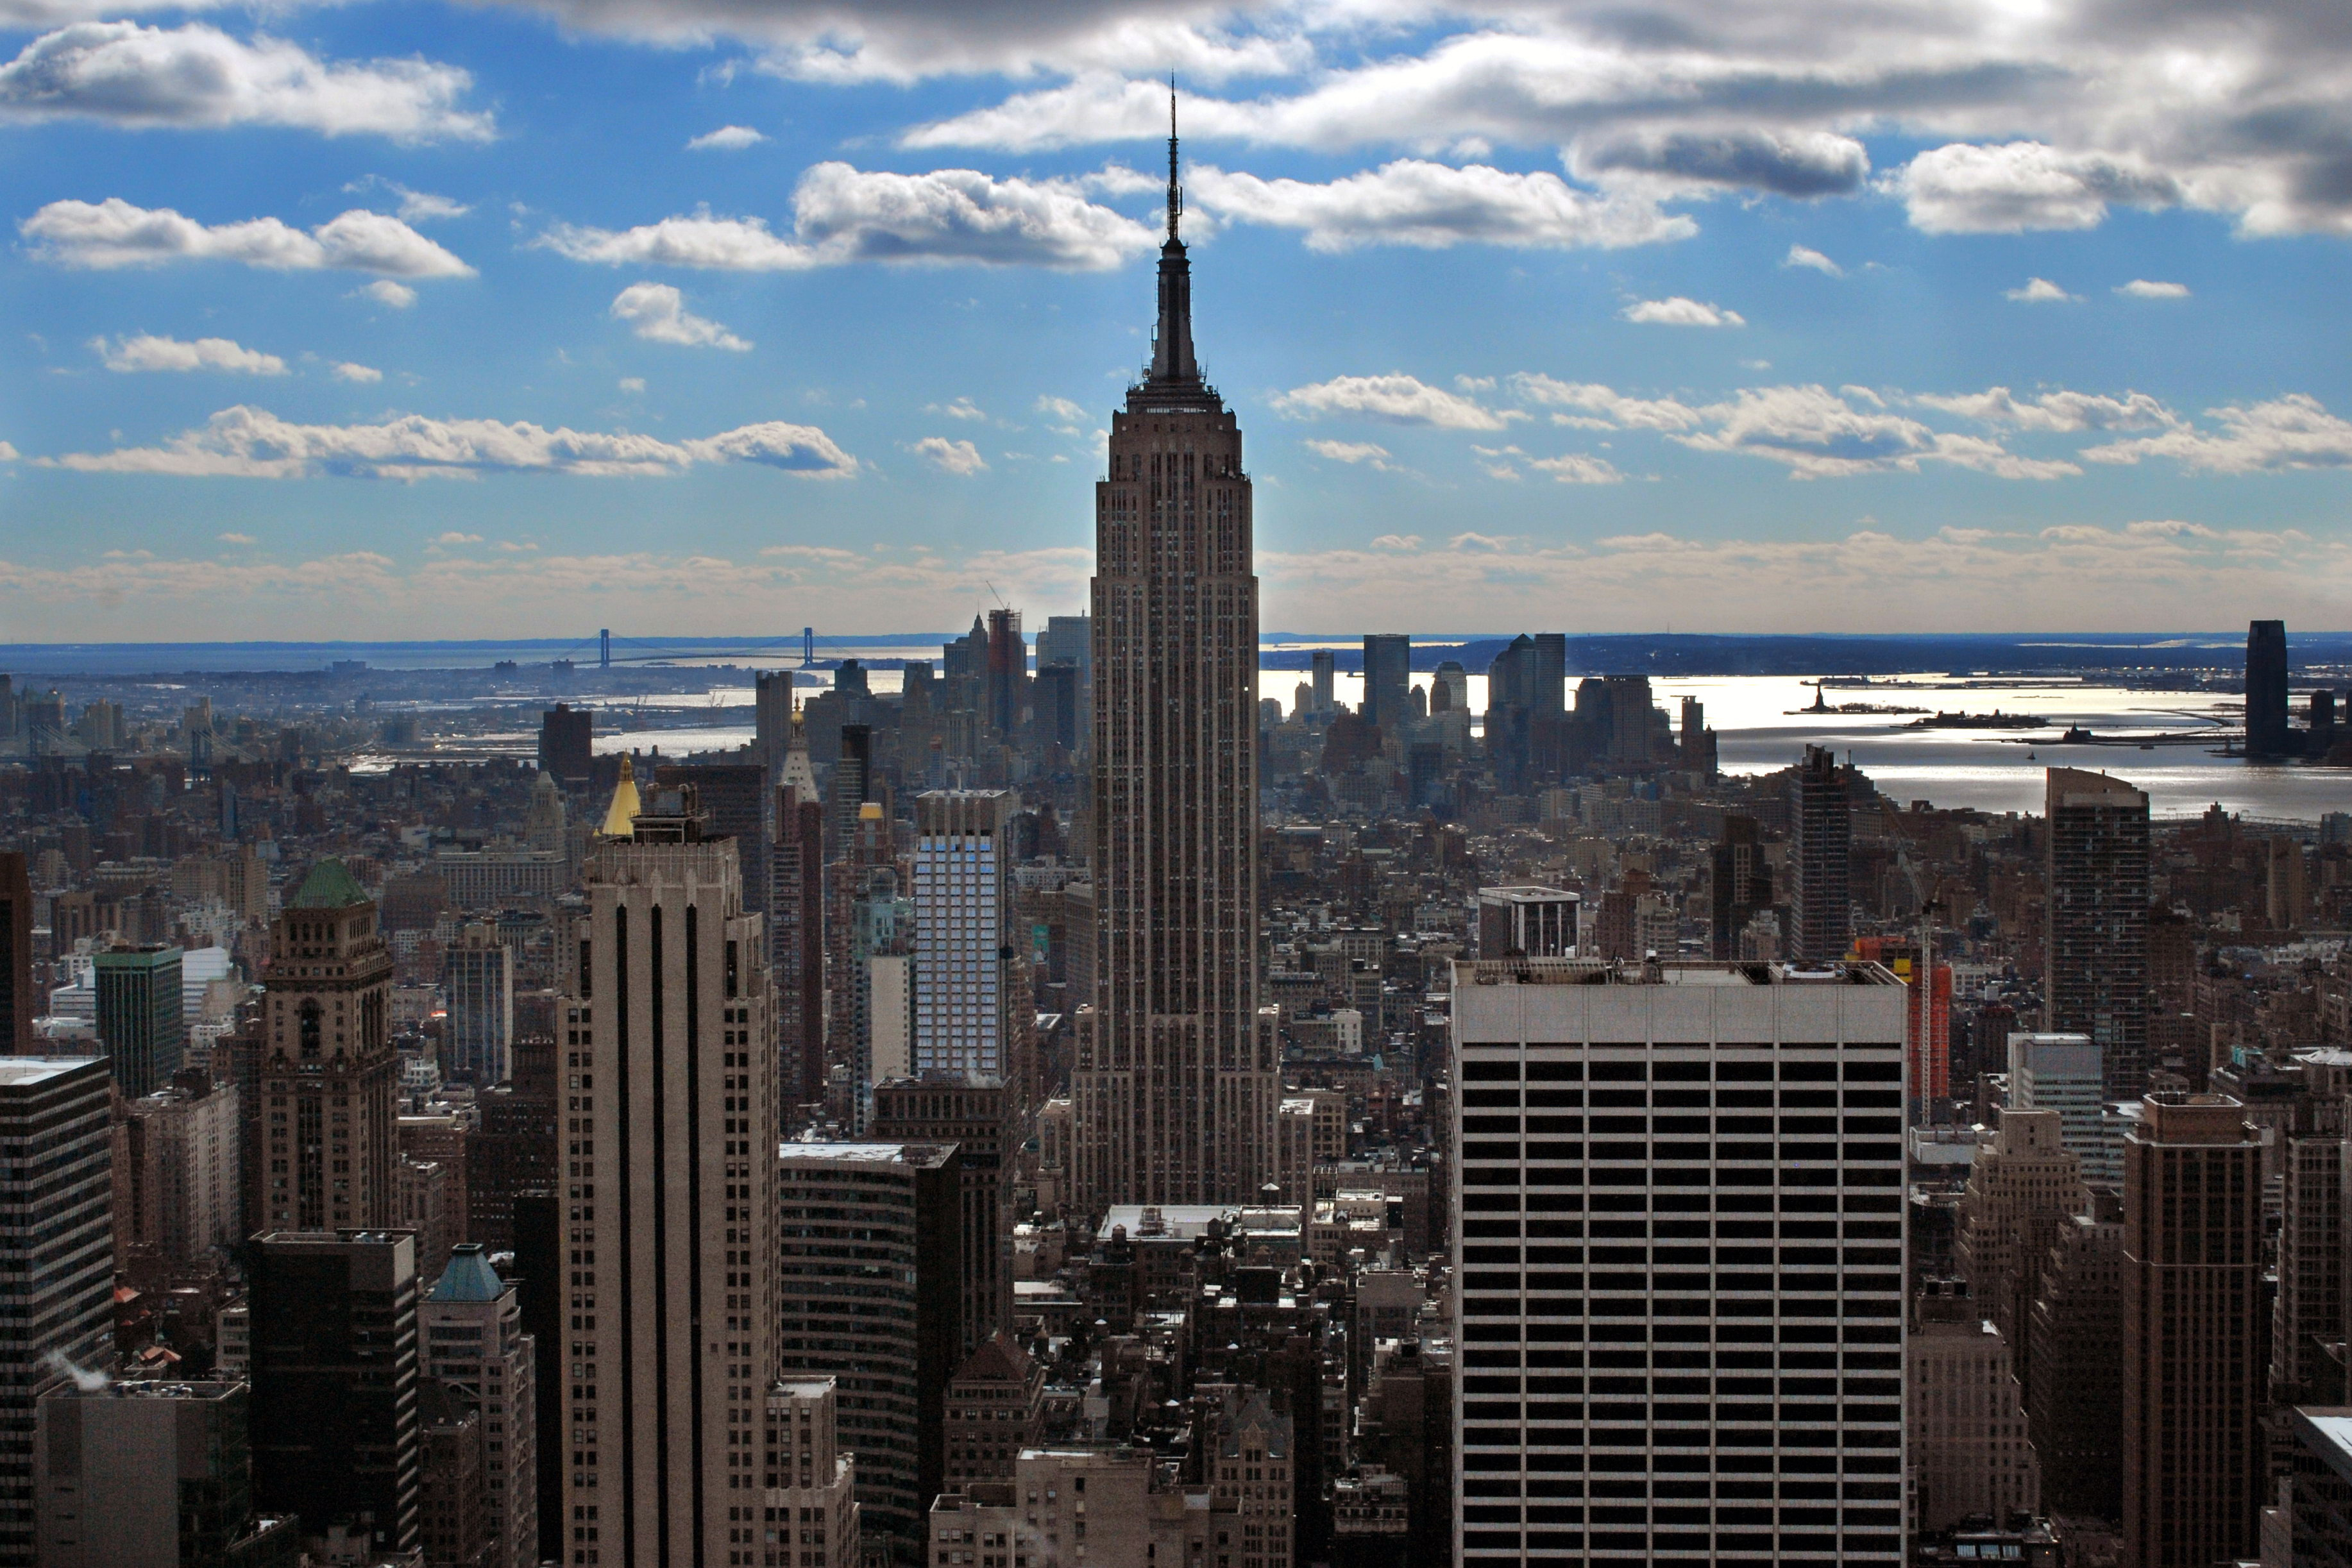 Empire State Building View   wallpaper 3667x2445